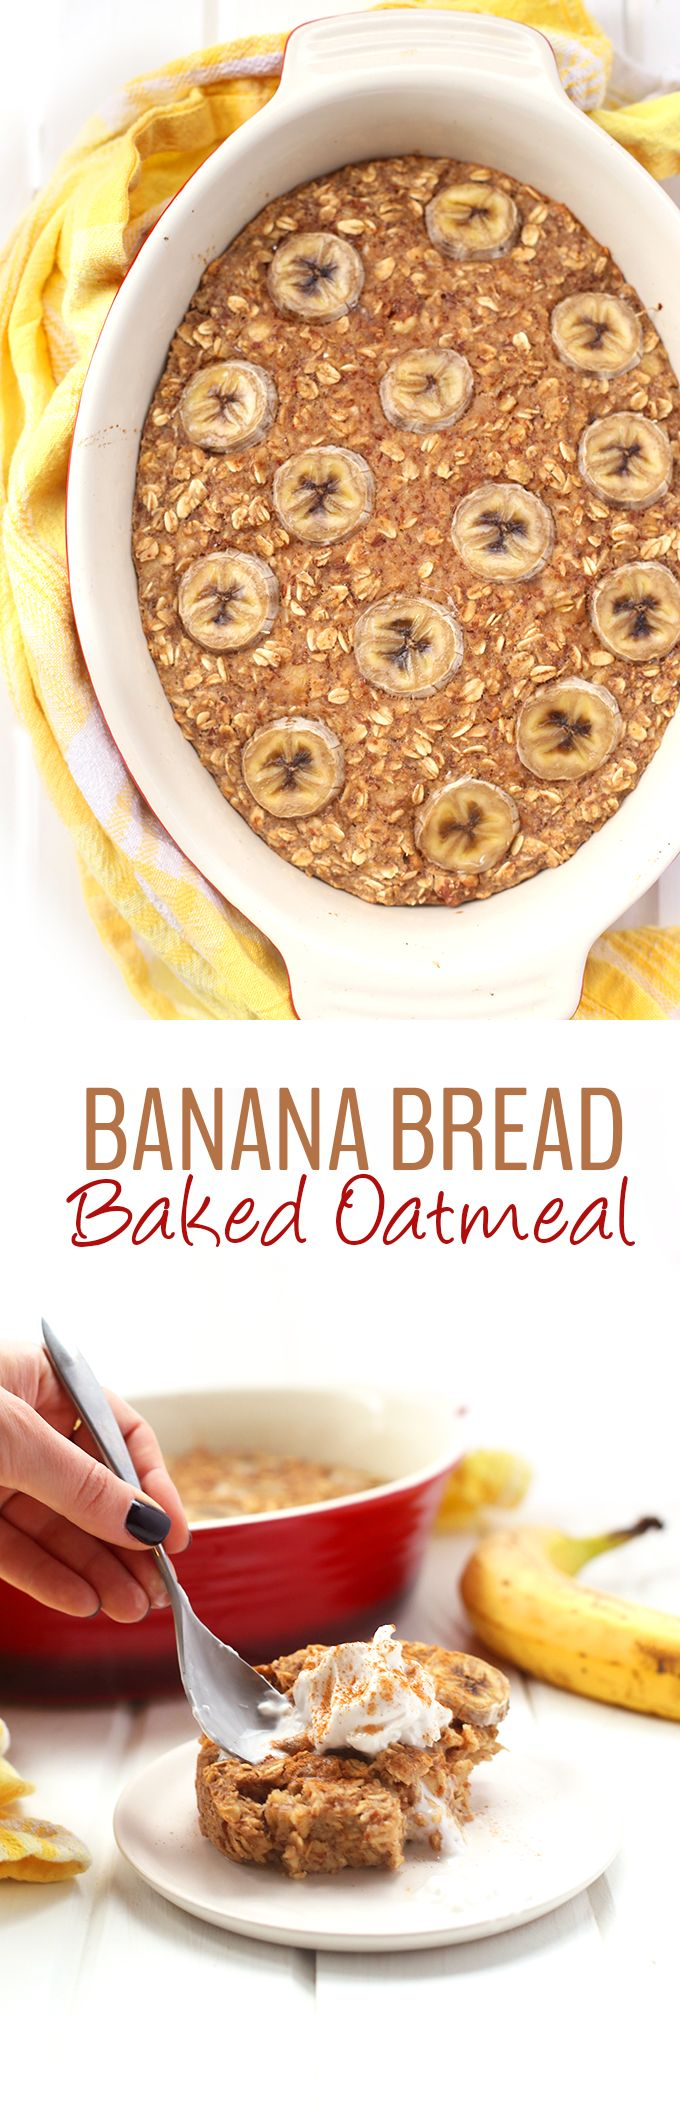 A delicious recipe for Banana Bread Baked Oatmeal that is vegan and gluten-free and packed-full of fiber. An easy weekday breakfast or weekend brunch recipe to serve a crowd.